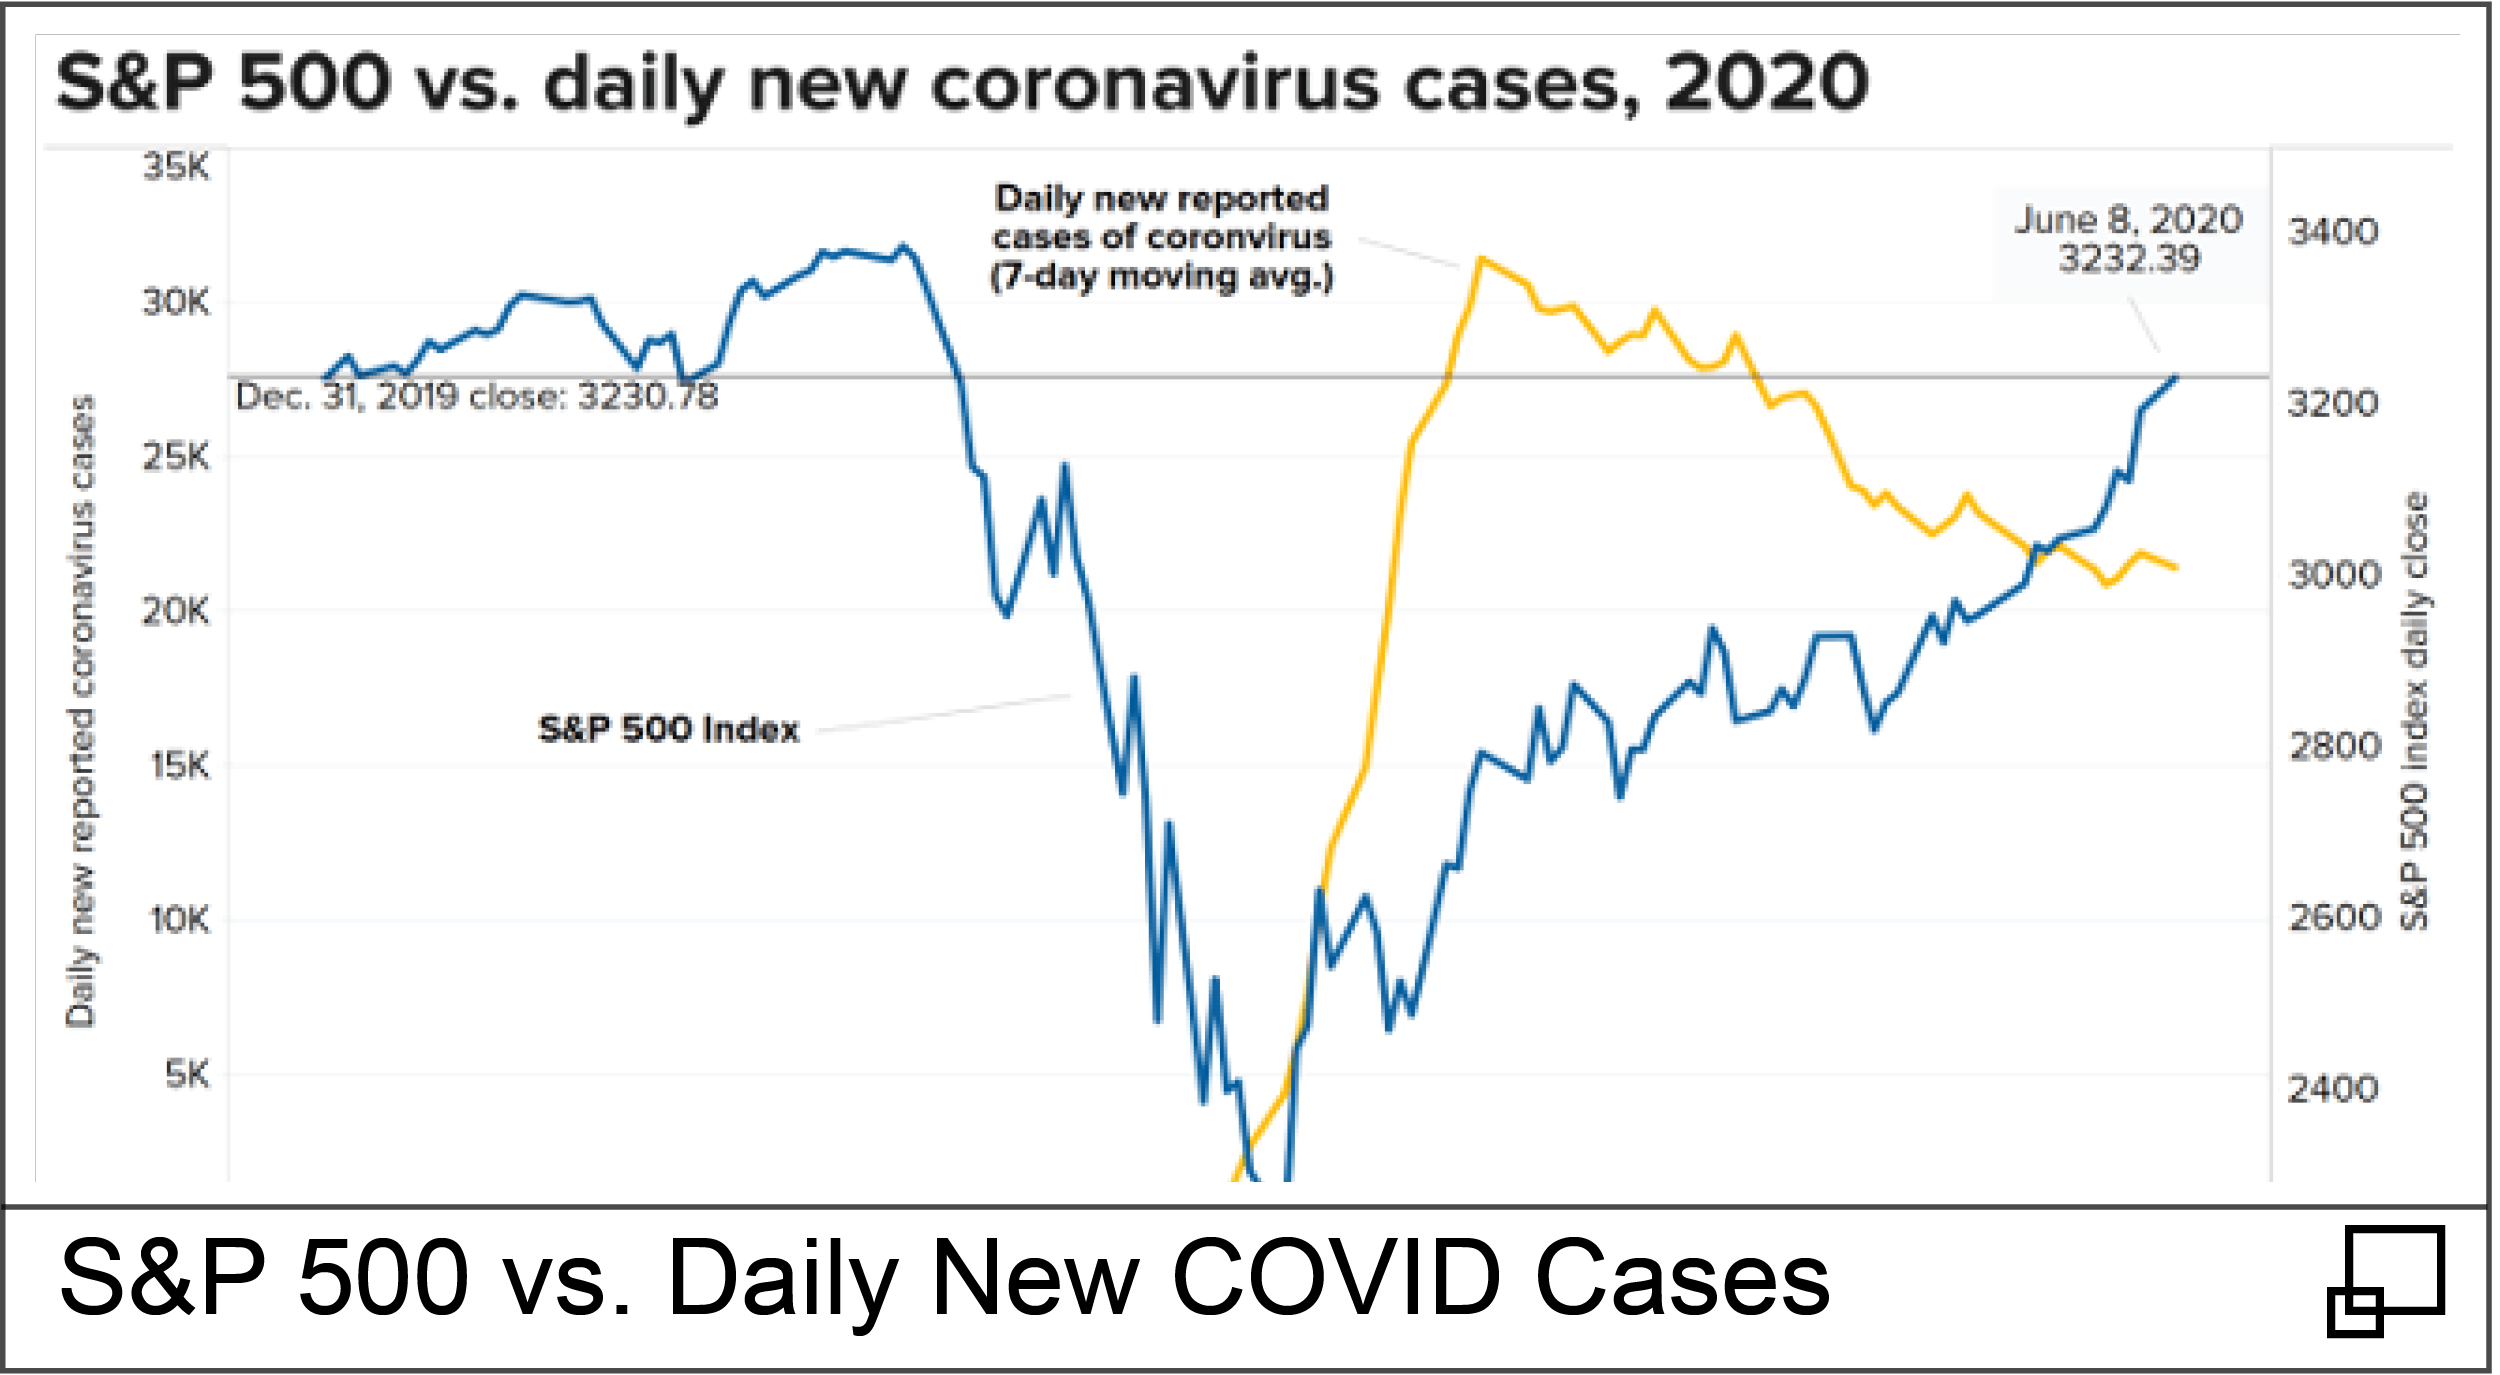 S&P 500 vs. Daily New COVID Cases